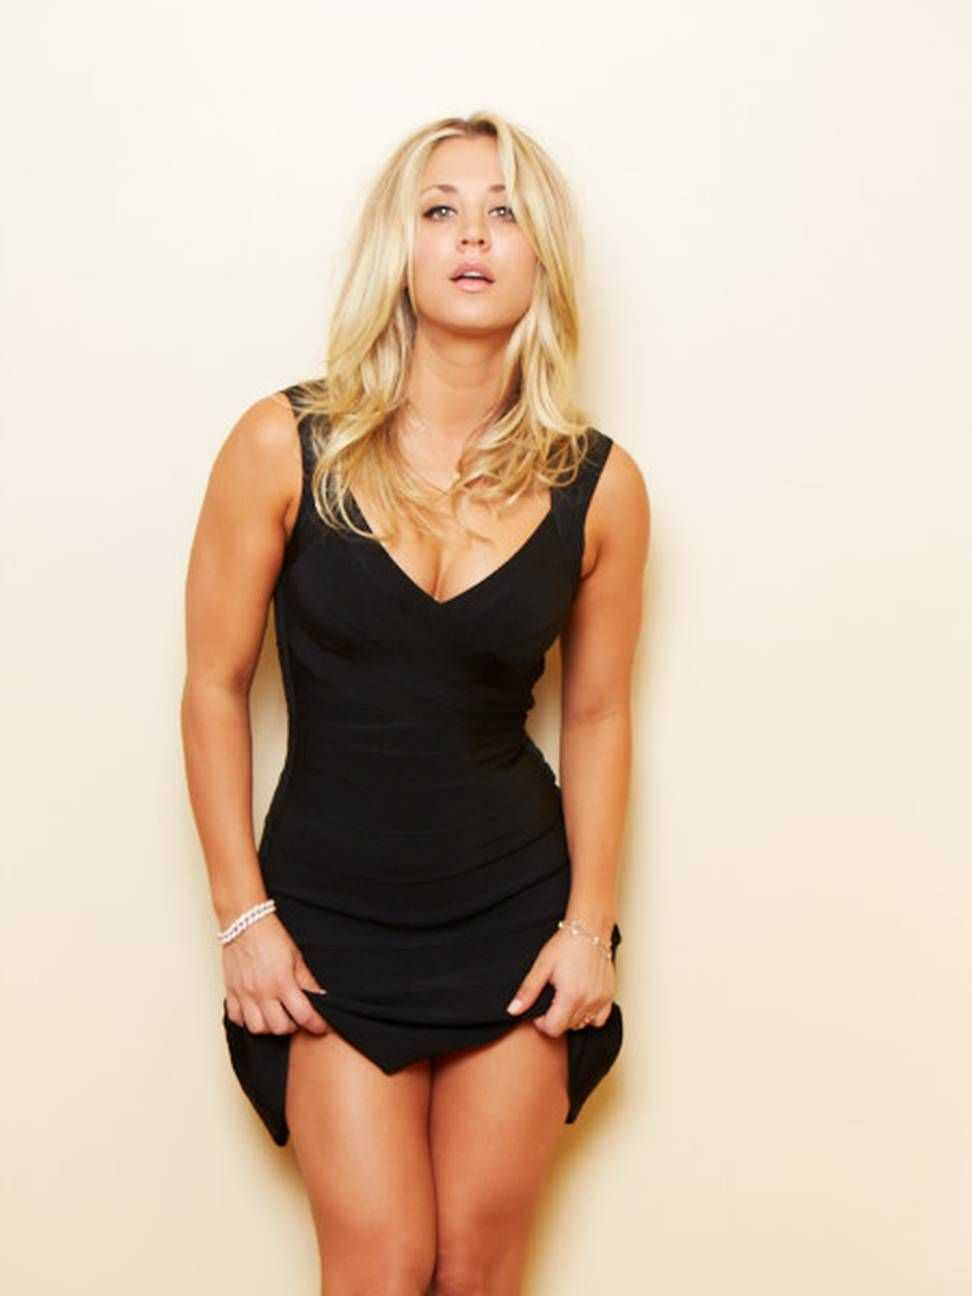 Kaley Cuoco sexy pictures